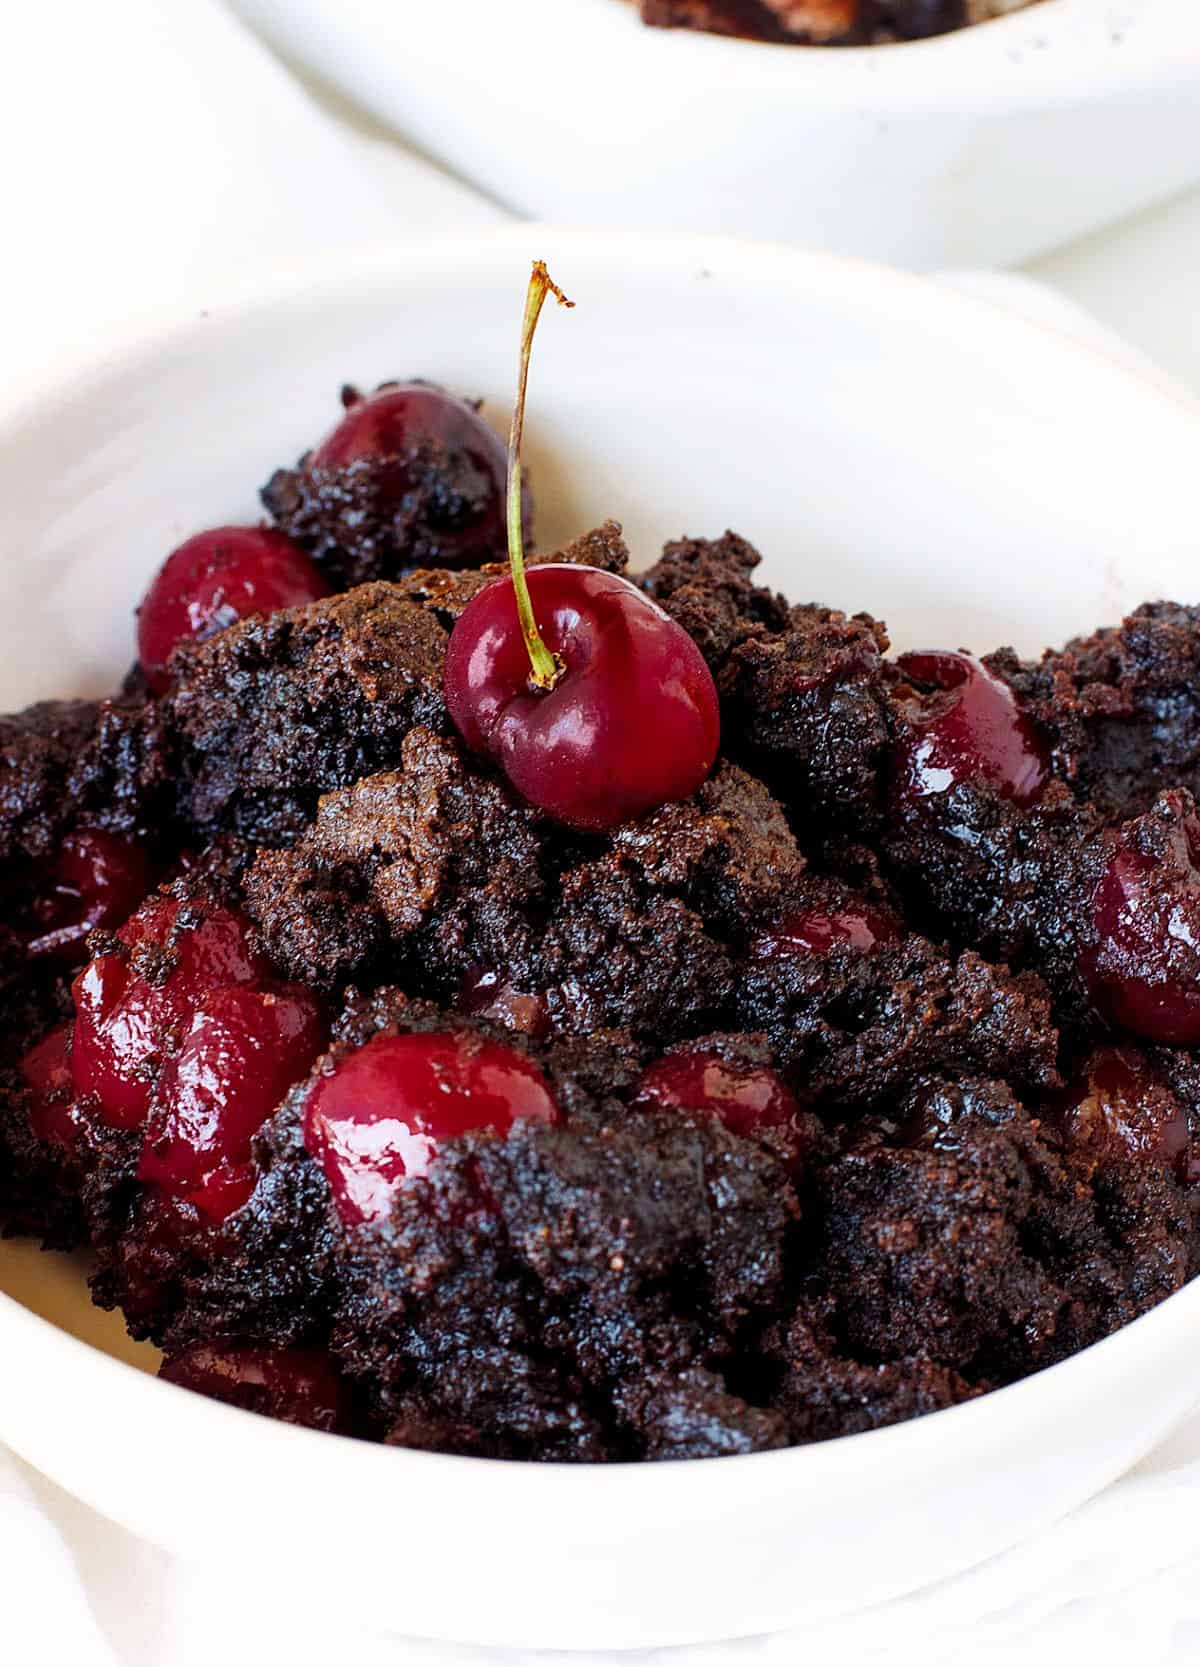 Cherry chocolate dump cake portion in a white bowl on white surface